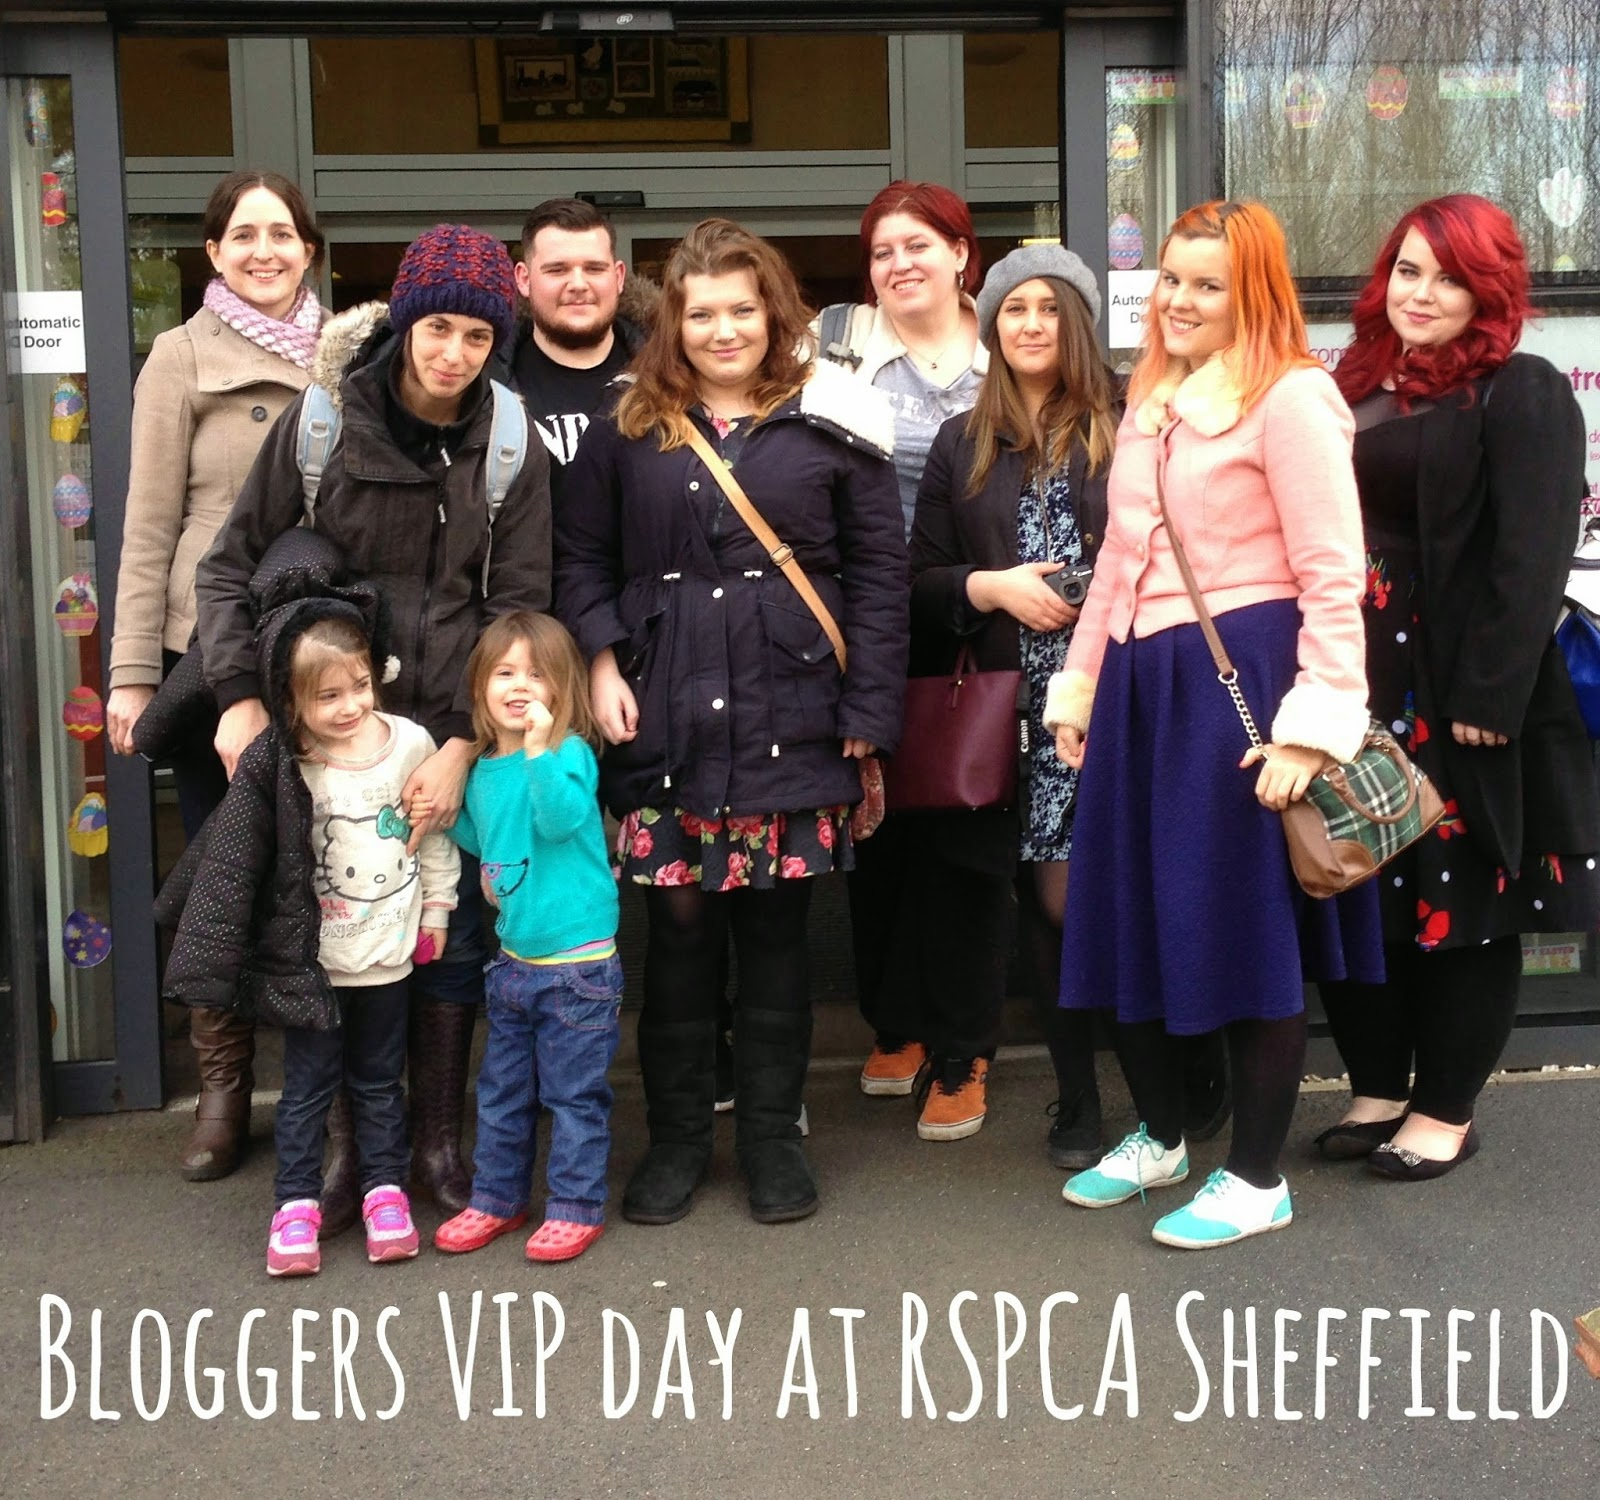 Bloggers VIP day at RSPCA Sheffield